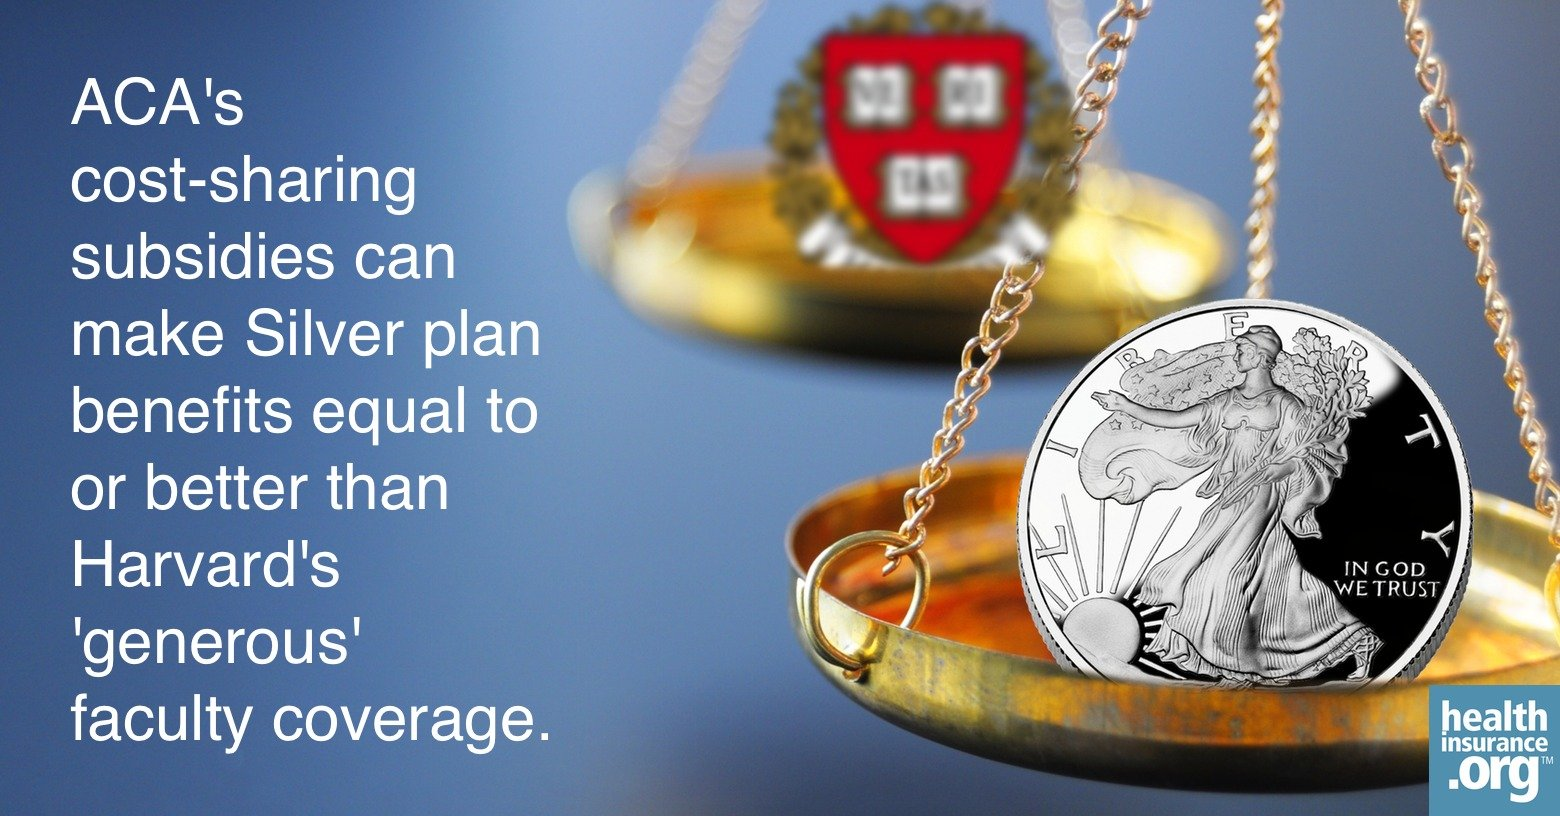 For many ACA beneficiaries: 'Ivy League' benefits? photo